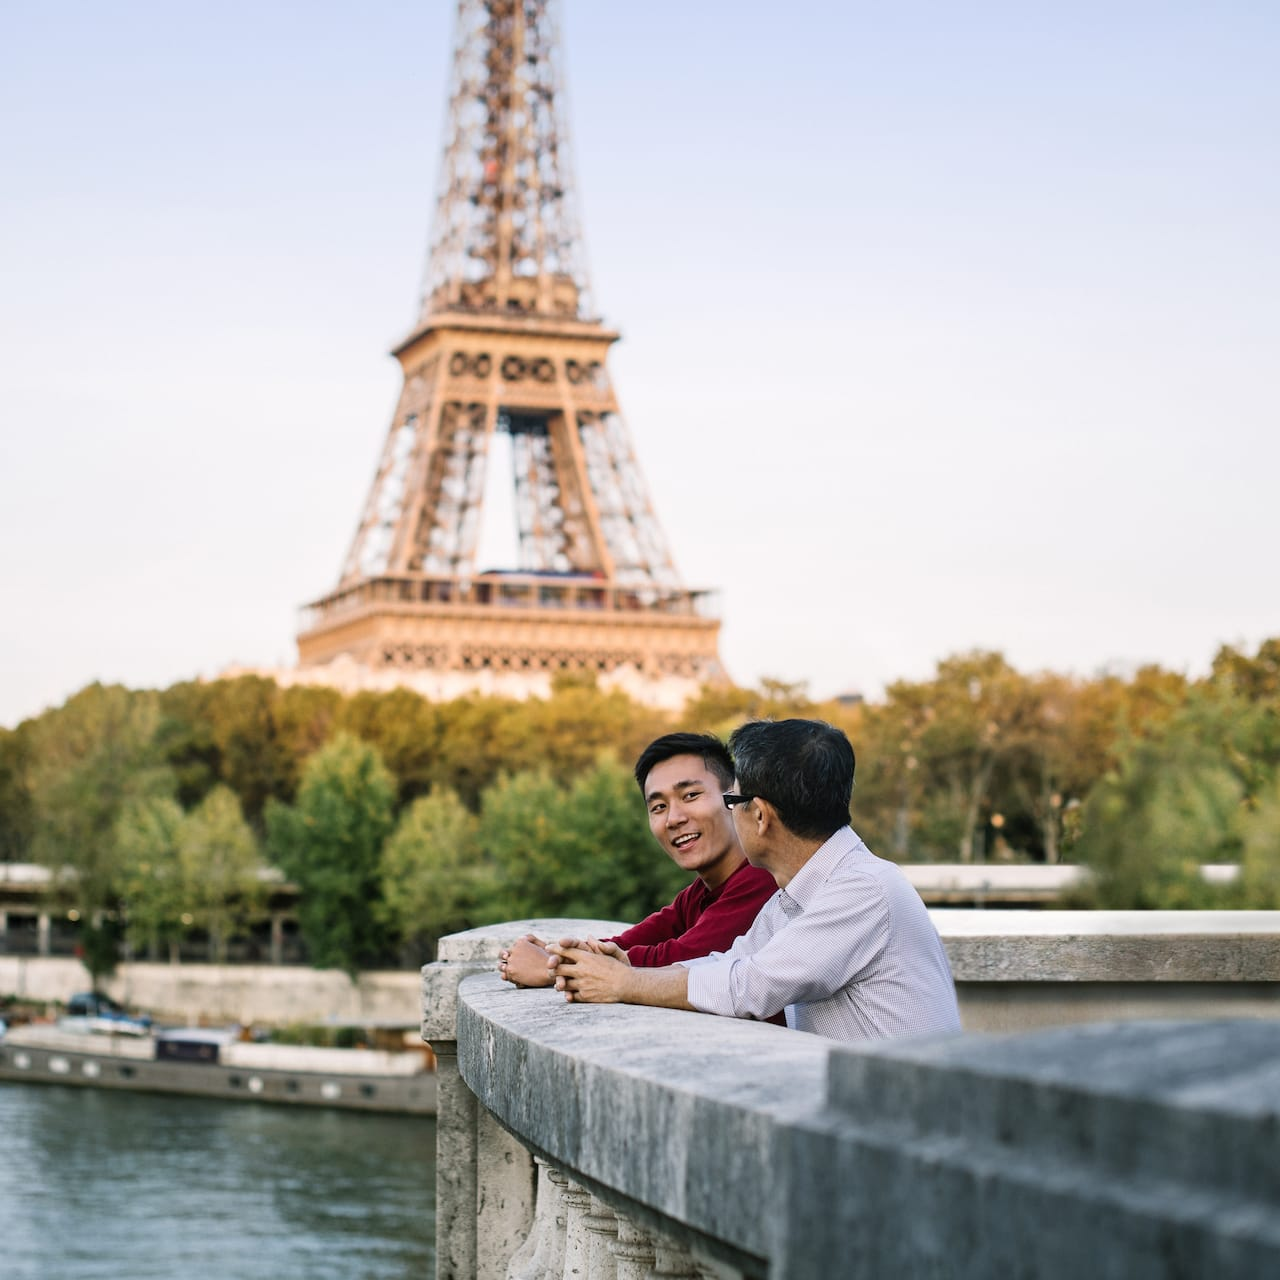 Two men stand with their arms resting on a cement railing overlooking the Seine River with the Eiffel Tower in the background